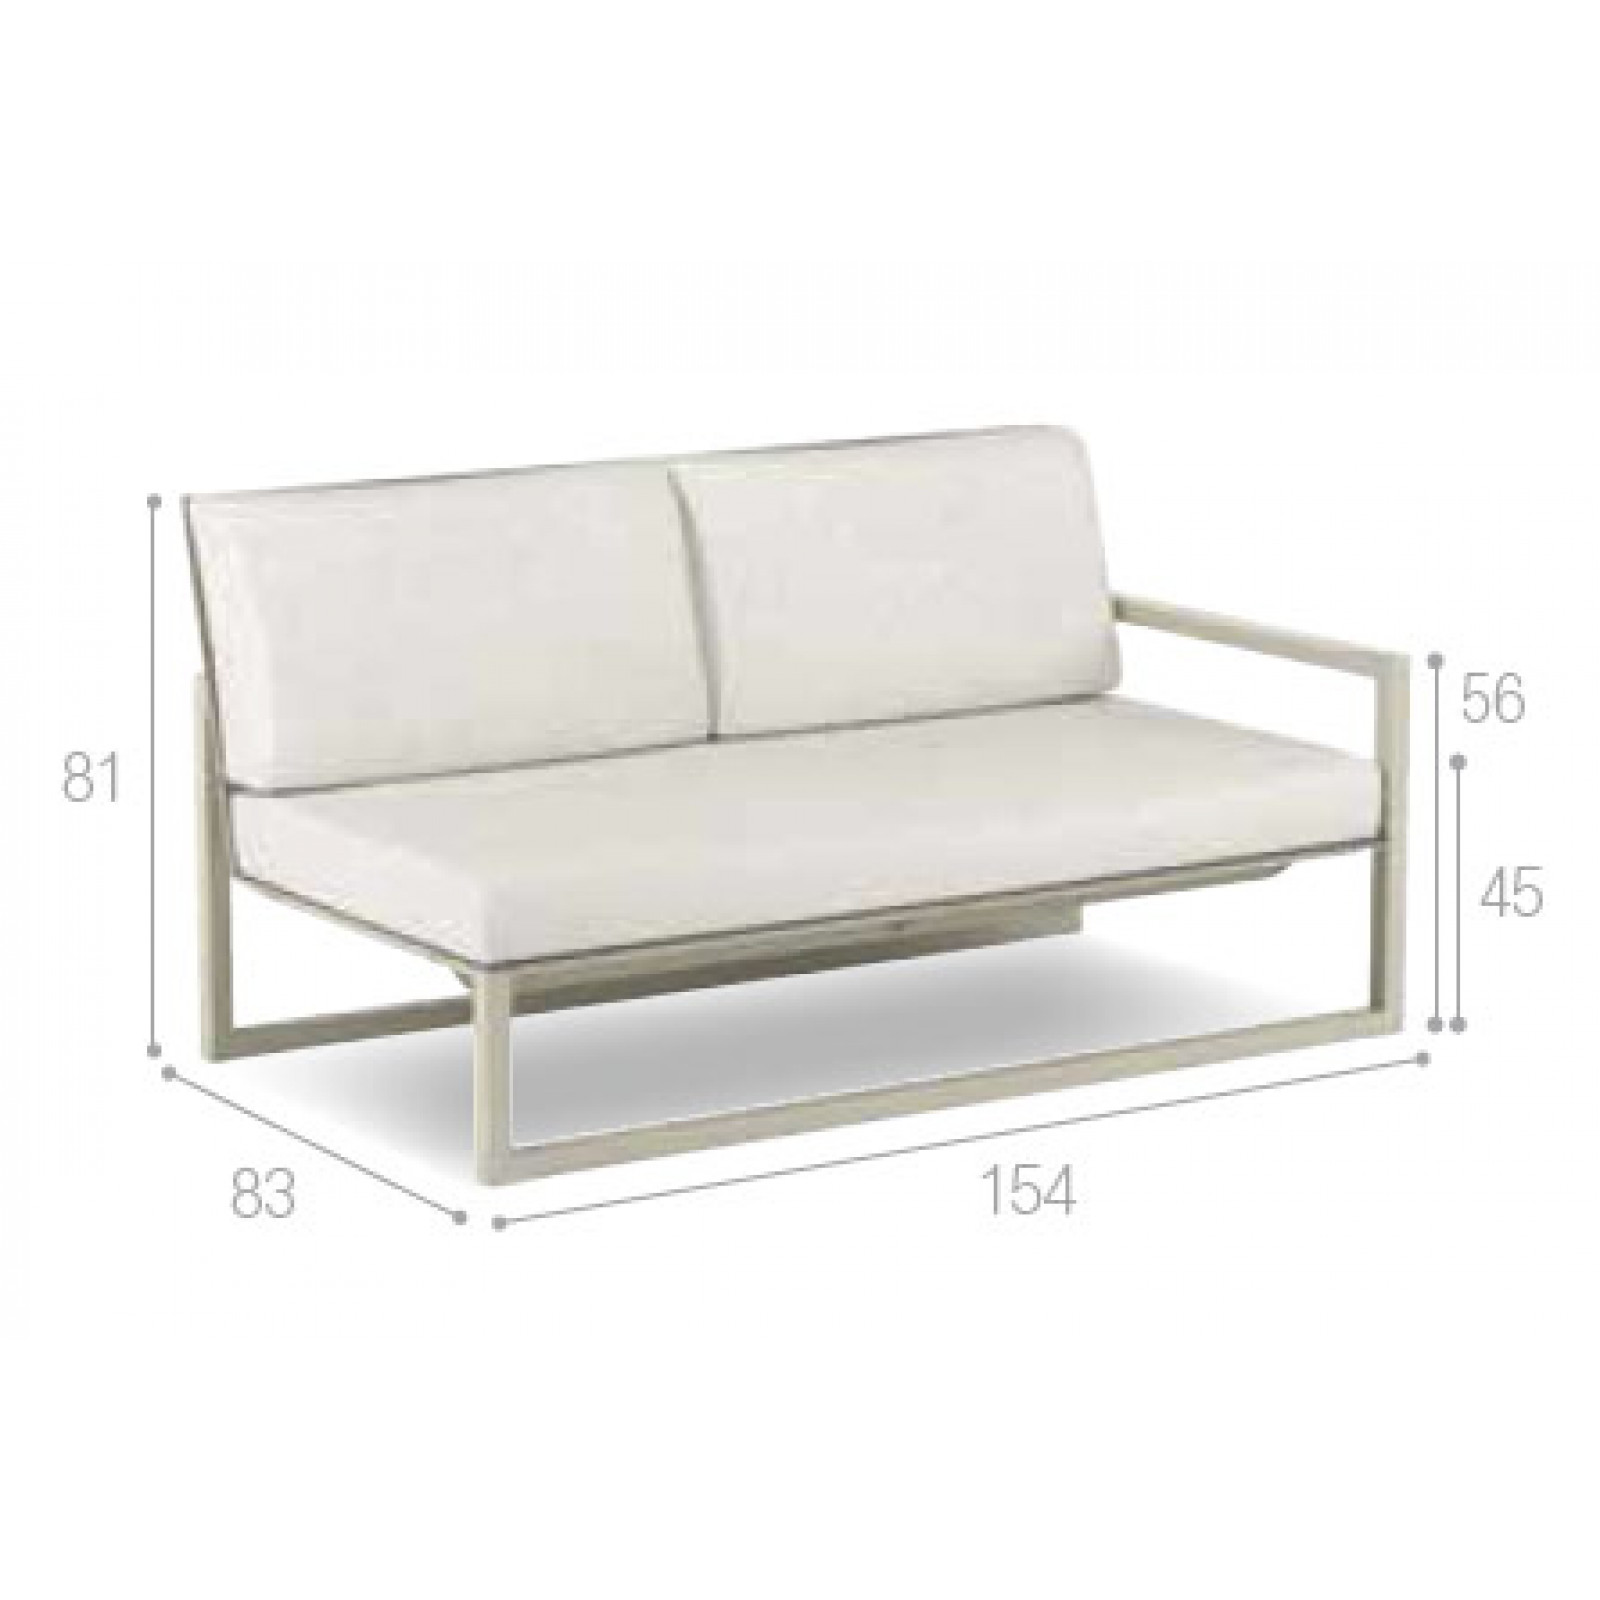 Royal Botania Ninix Lounge Modul 154 cm rechts oder links